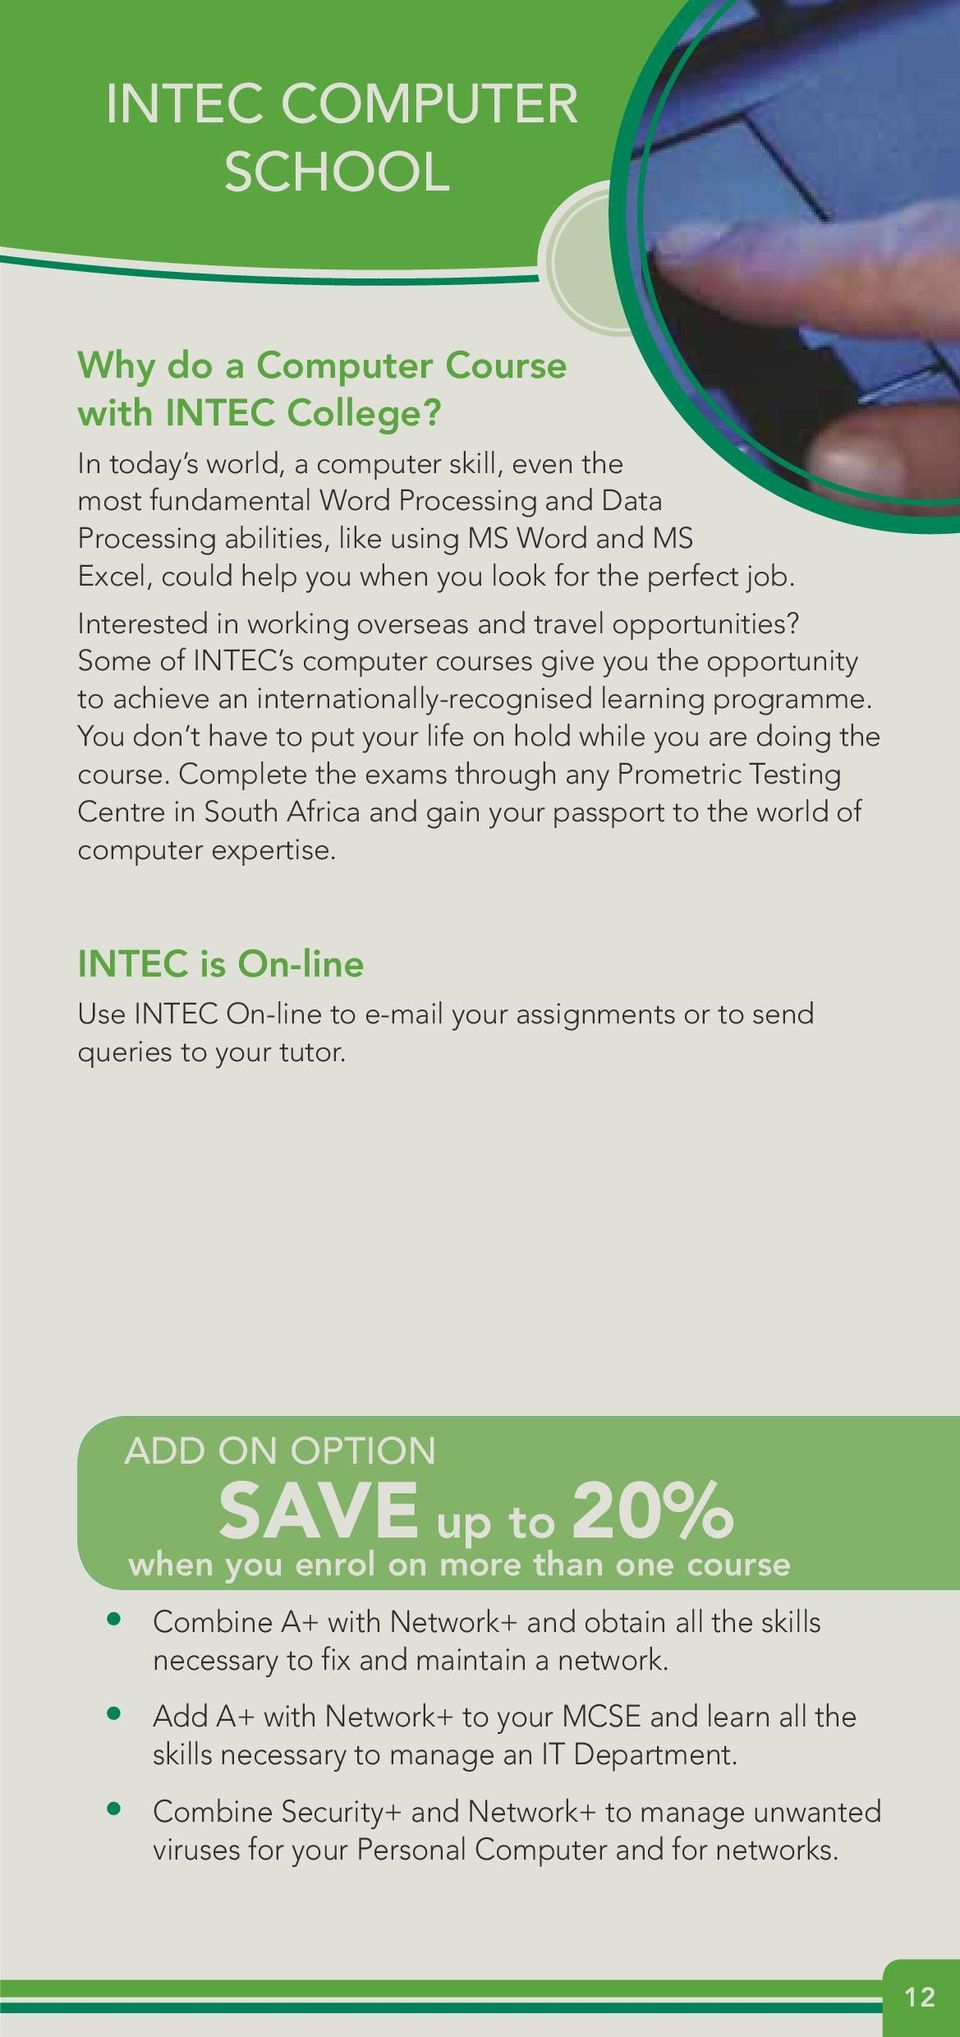 Interested in working overseas and travel opportunities? Some of INTEC s computer courses give you the opportunity to achieve an internationally-recognised learning programme.